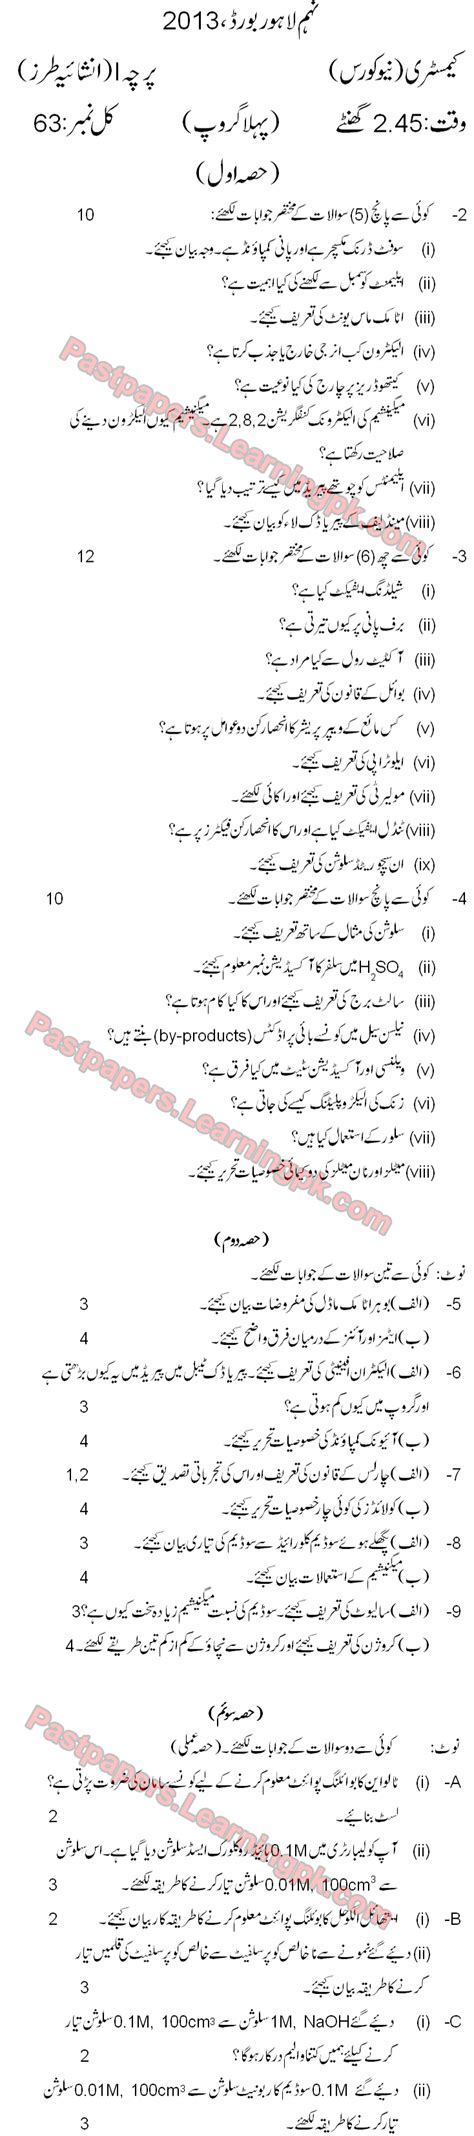 lahore board 10th class math old paper last 5 year old lahore board 2013 9th class chemistry past paper 5 year